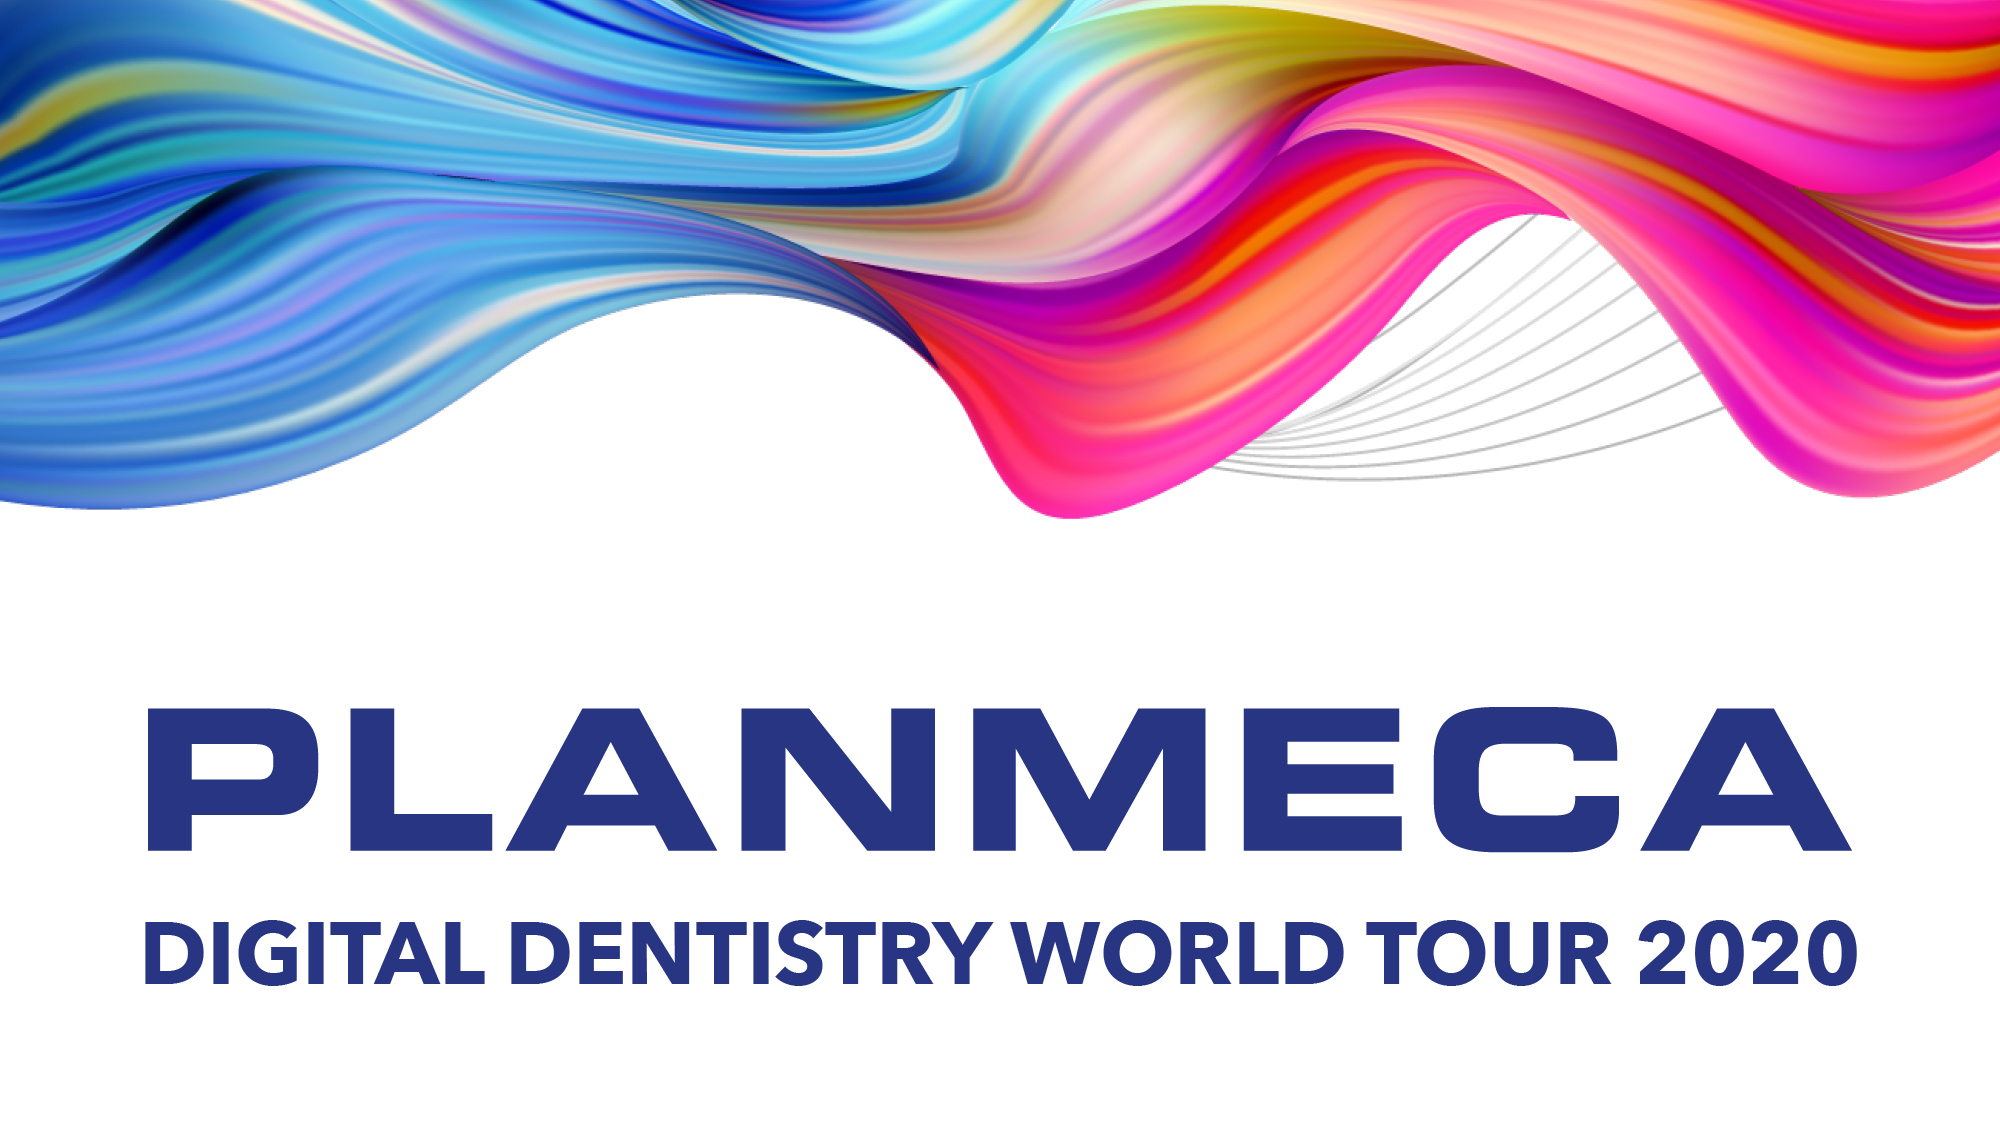 Světové turné Planmeca Digital Dentistry World Tour 2020 on-line!